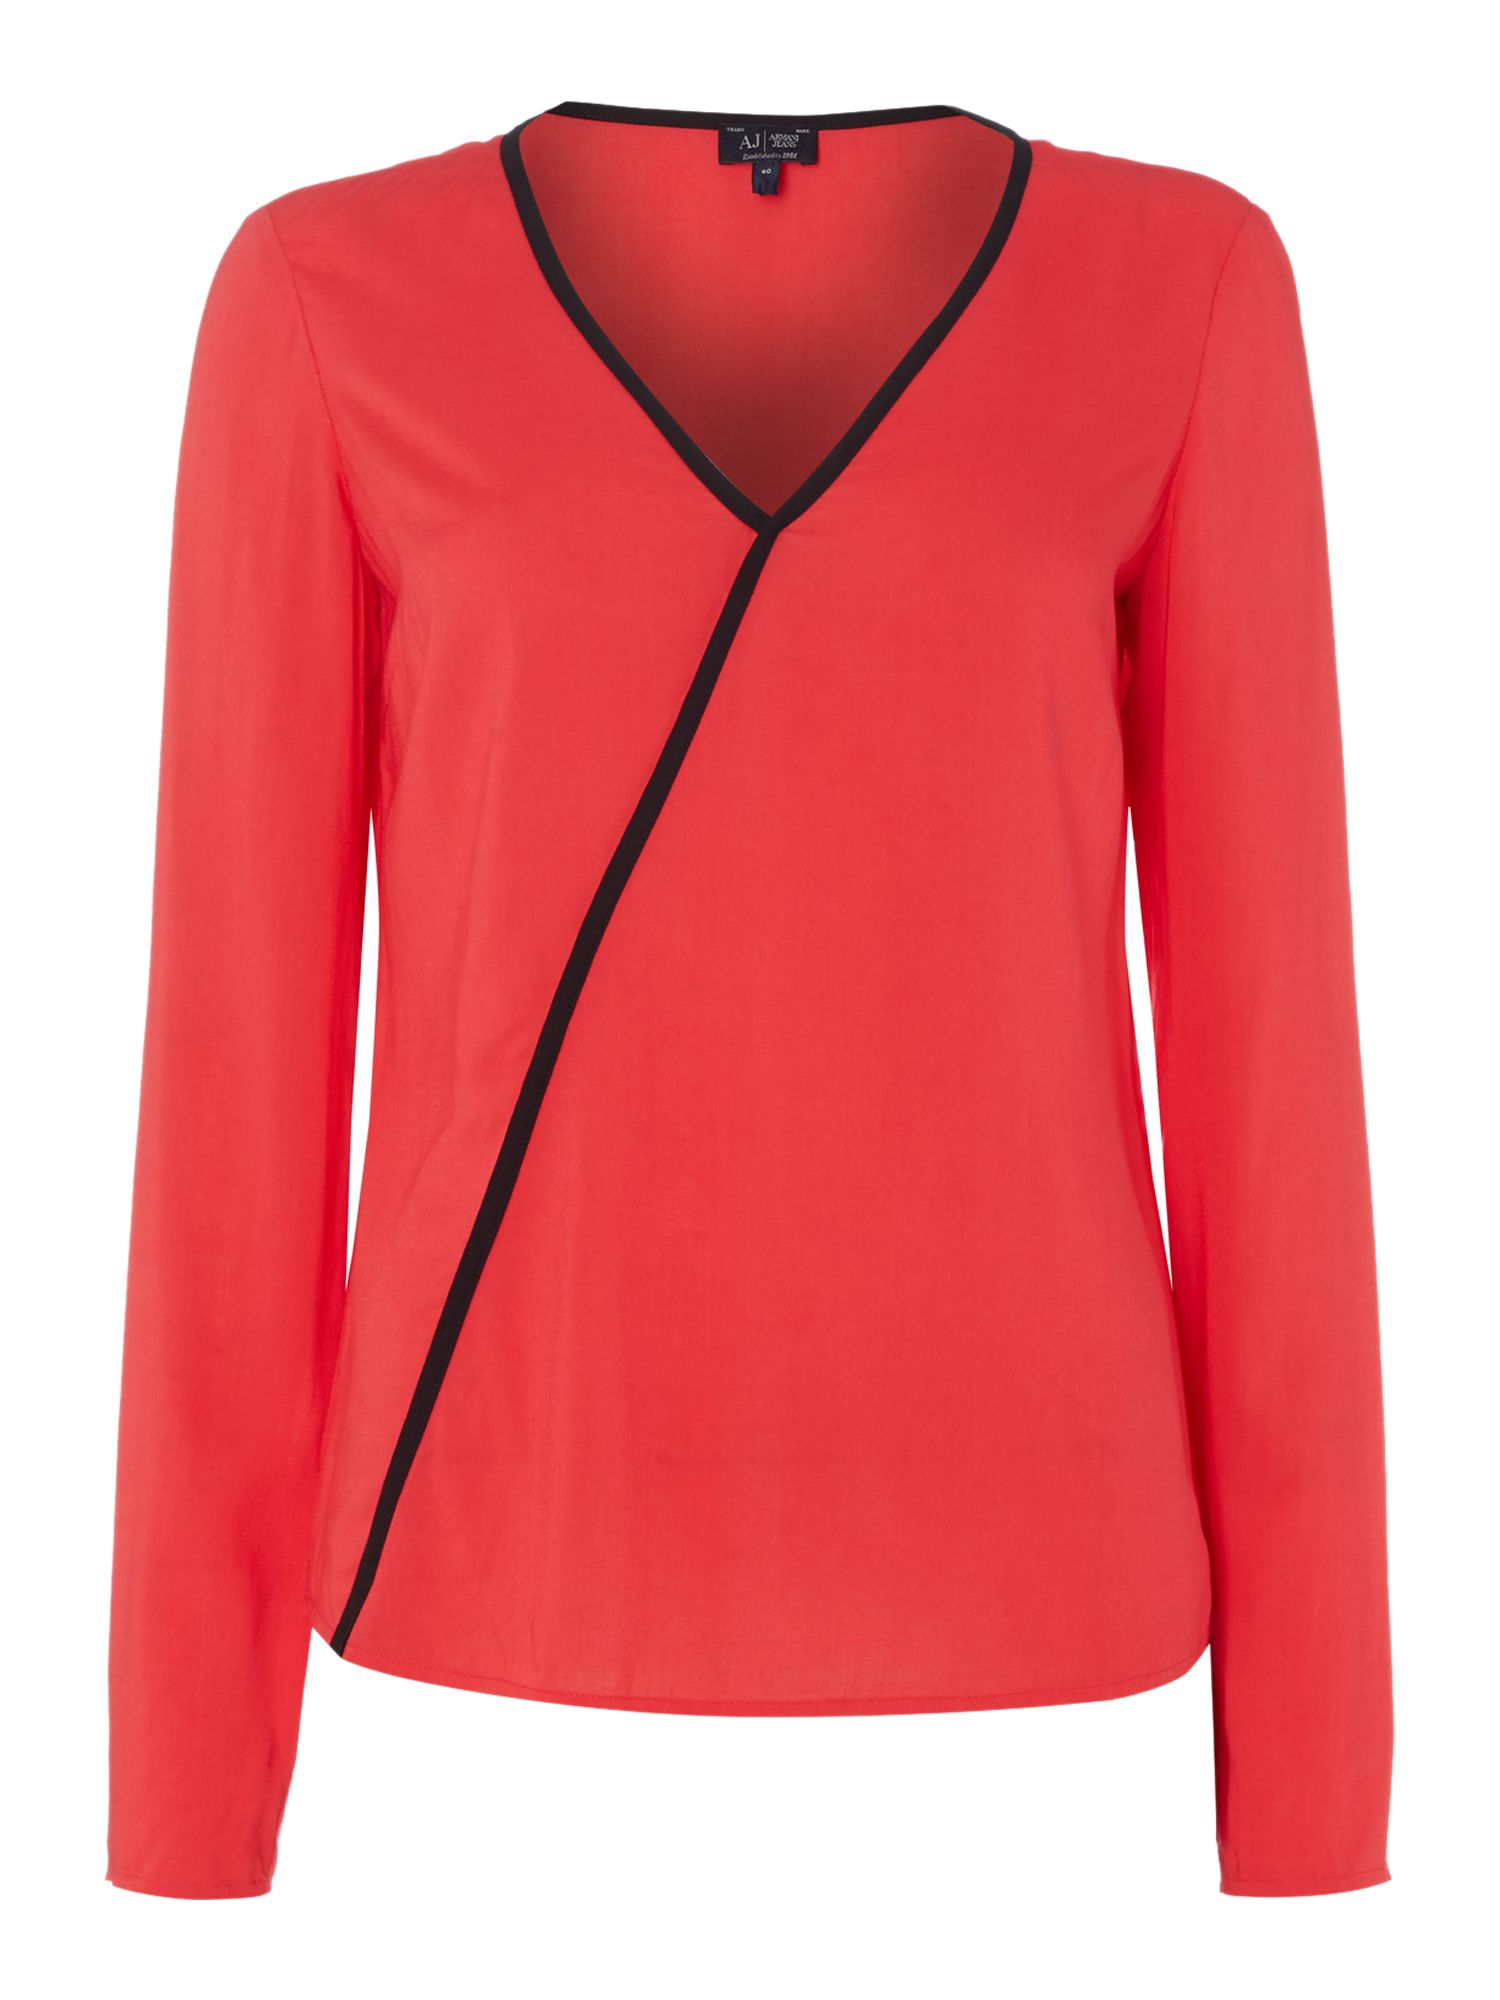 Armani Jeans Long sleeve v neck top with contrast piping, Red